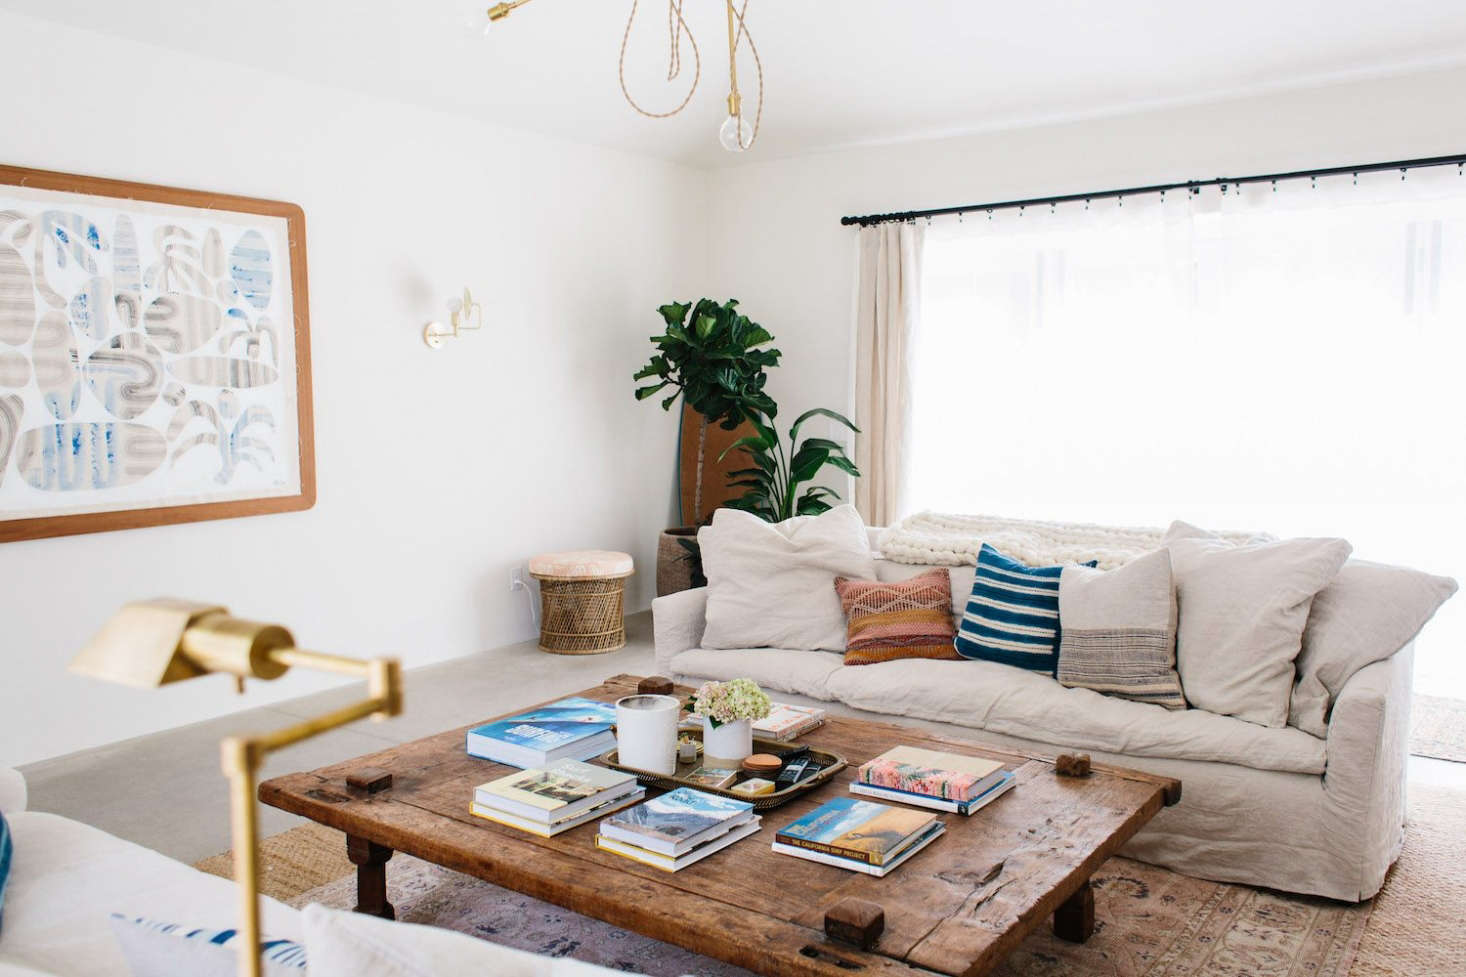 """The project's biggest splurge was on a Belgian coffee table the designer found on 1stdibs. """"It's massive,"""" she says. """"I think three people could sleep on it."""" The artwork is by Ty Williams."""